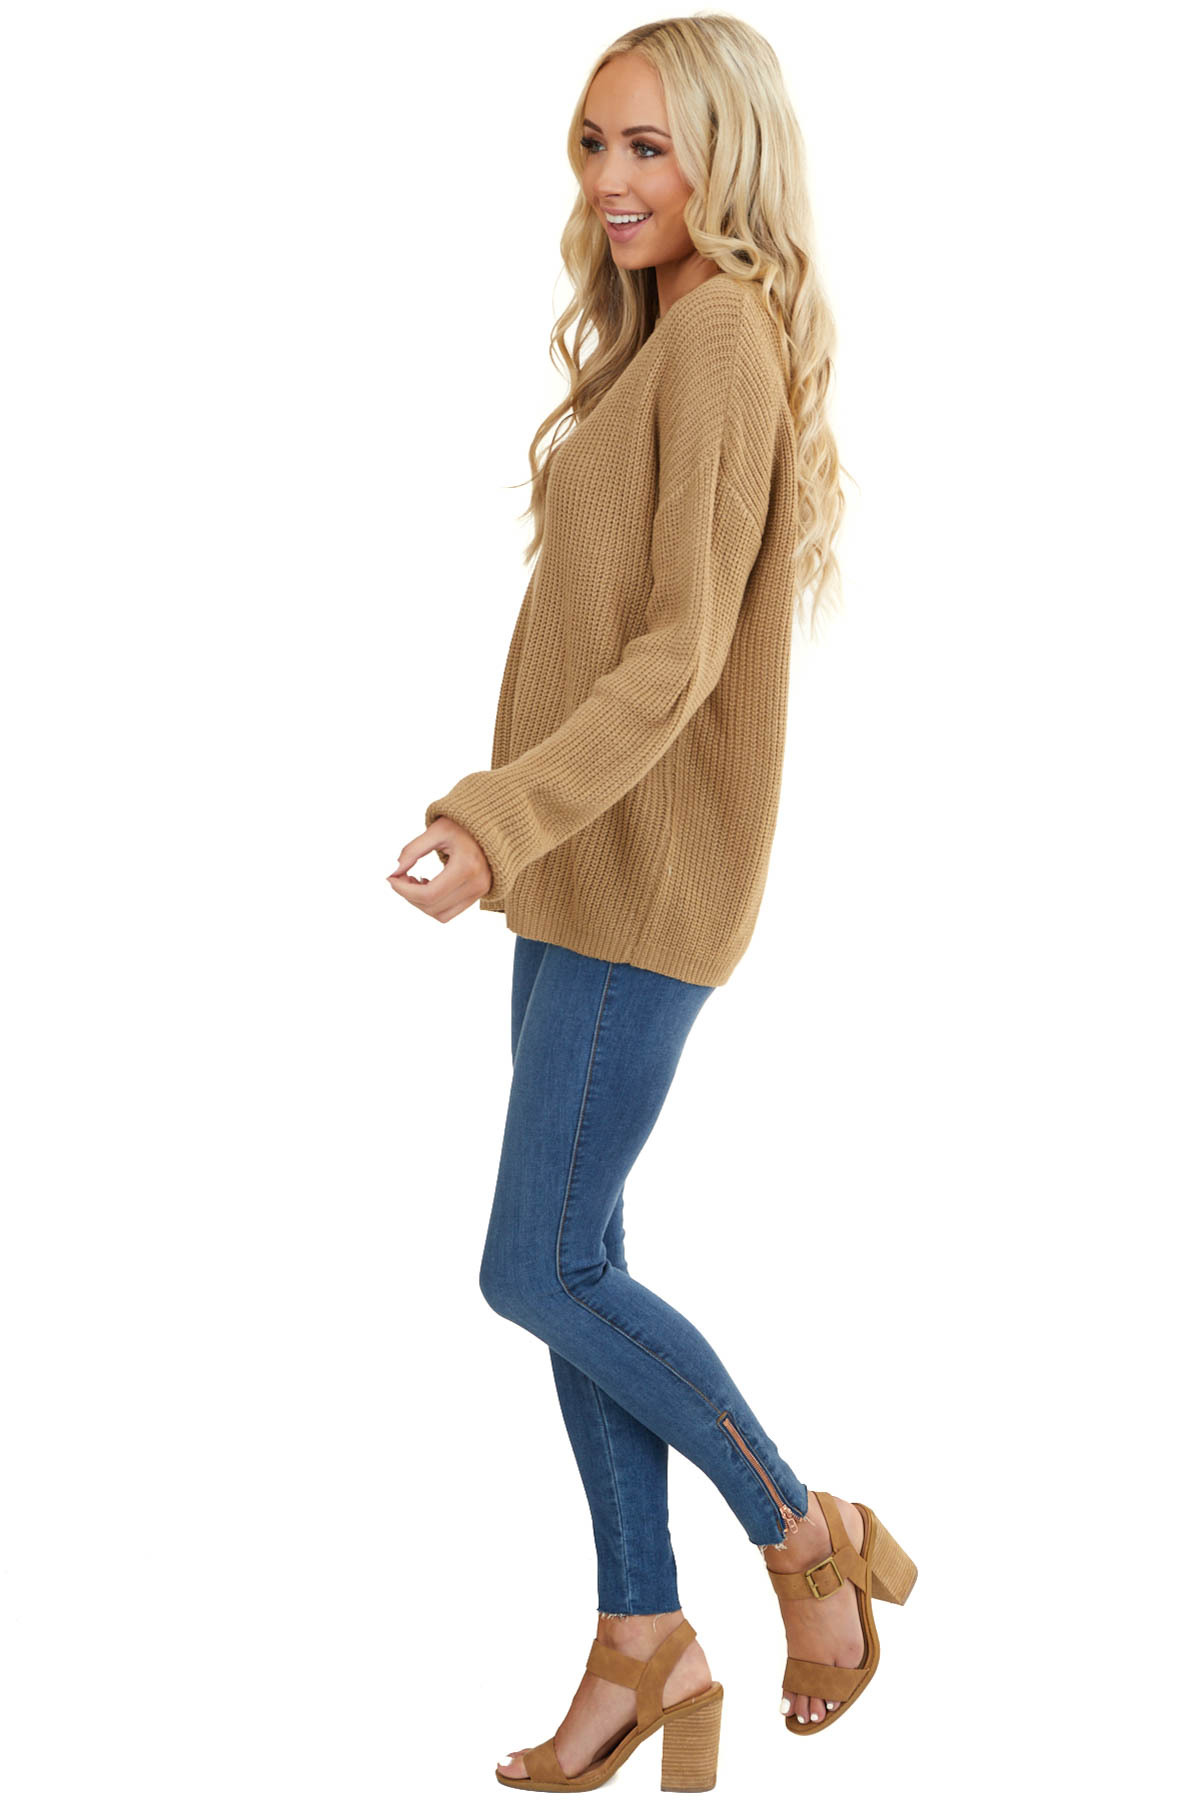 Taupe Thick Knit Casual Sweater with Neckline Cutout